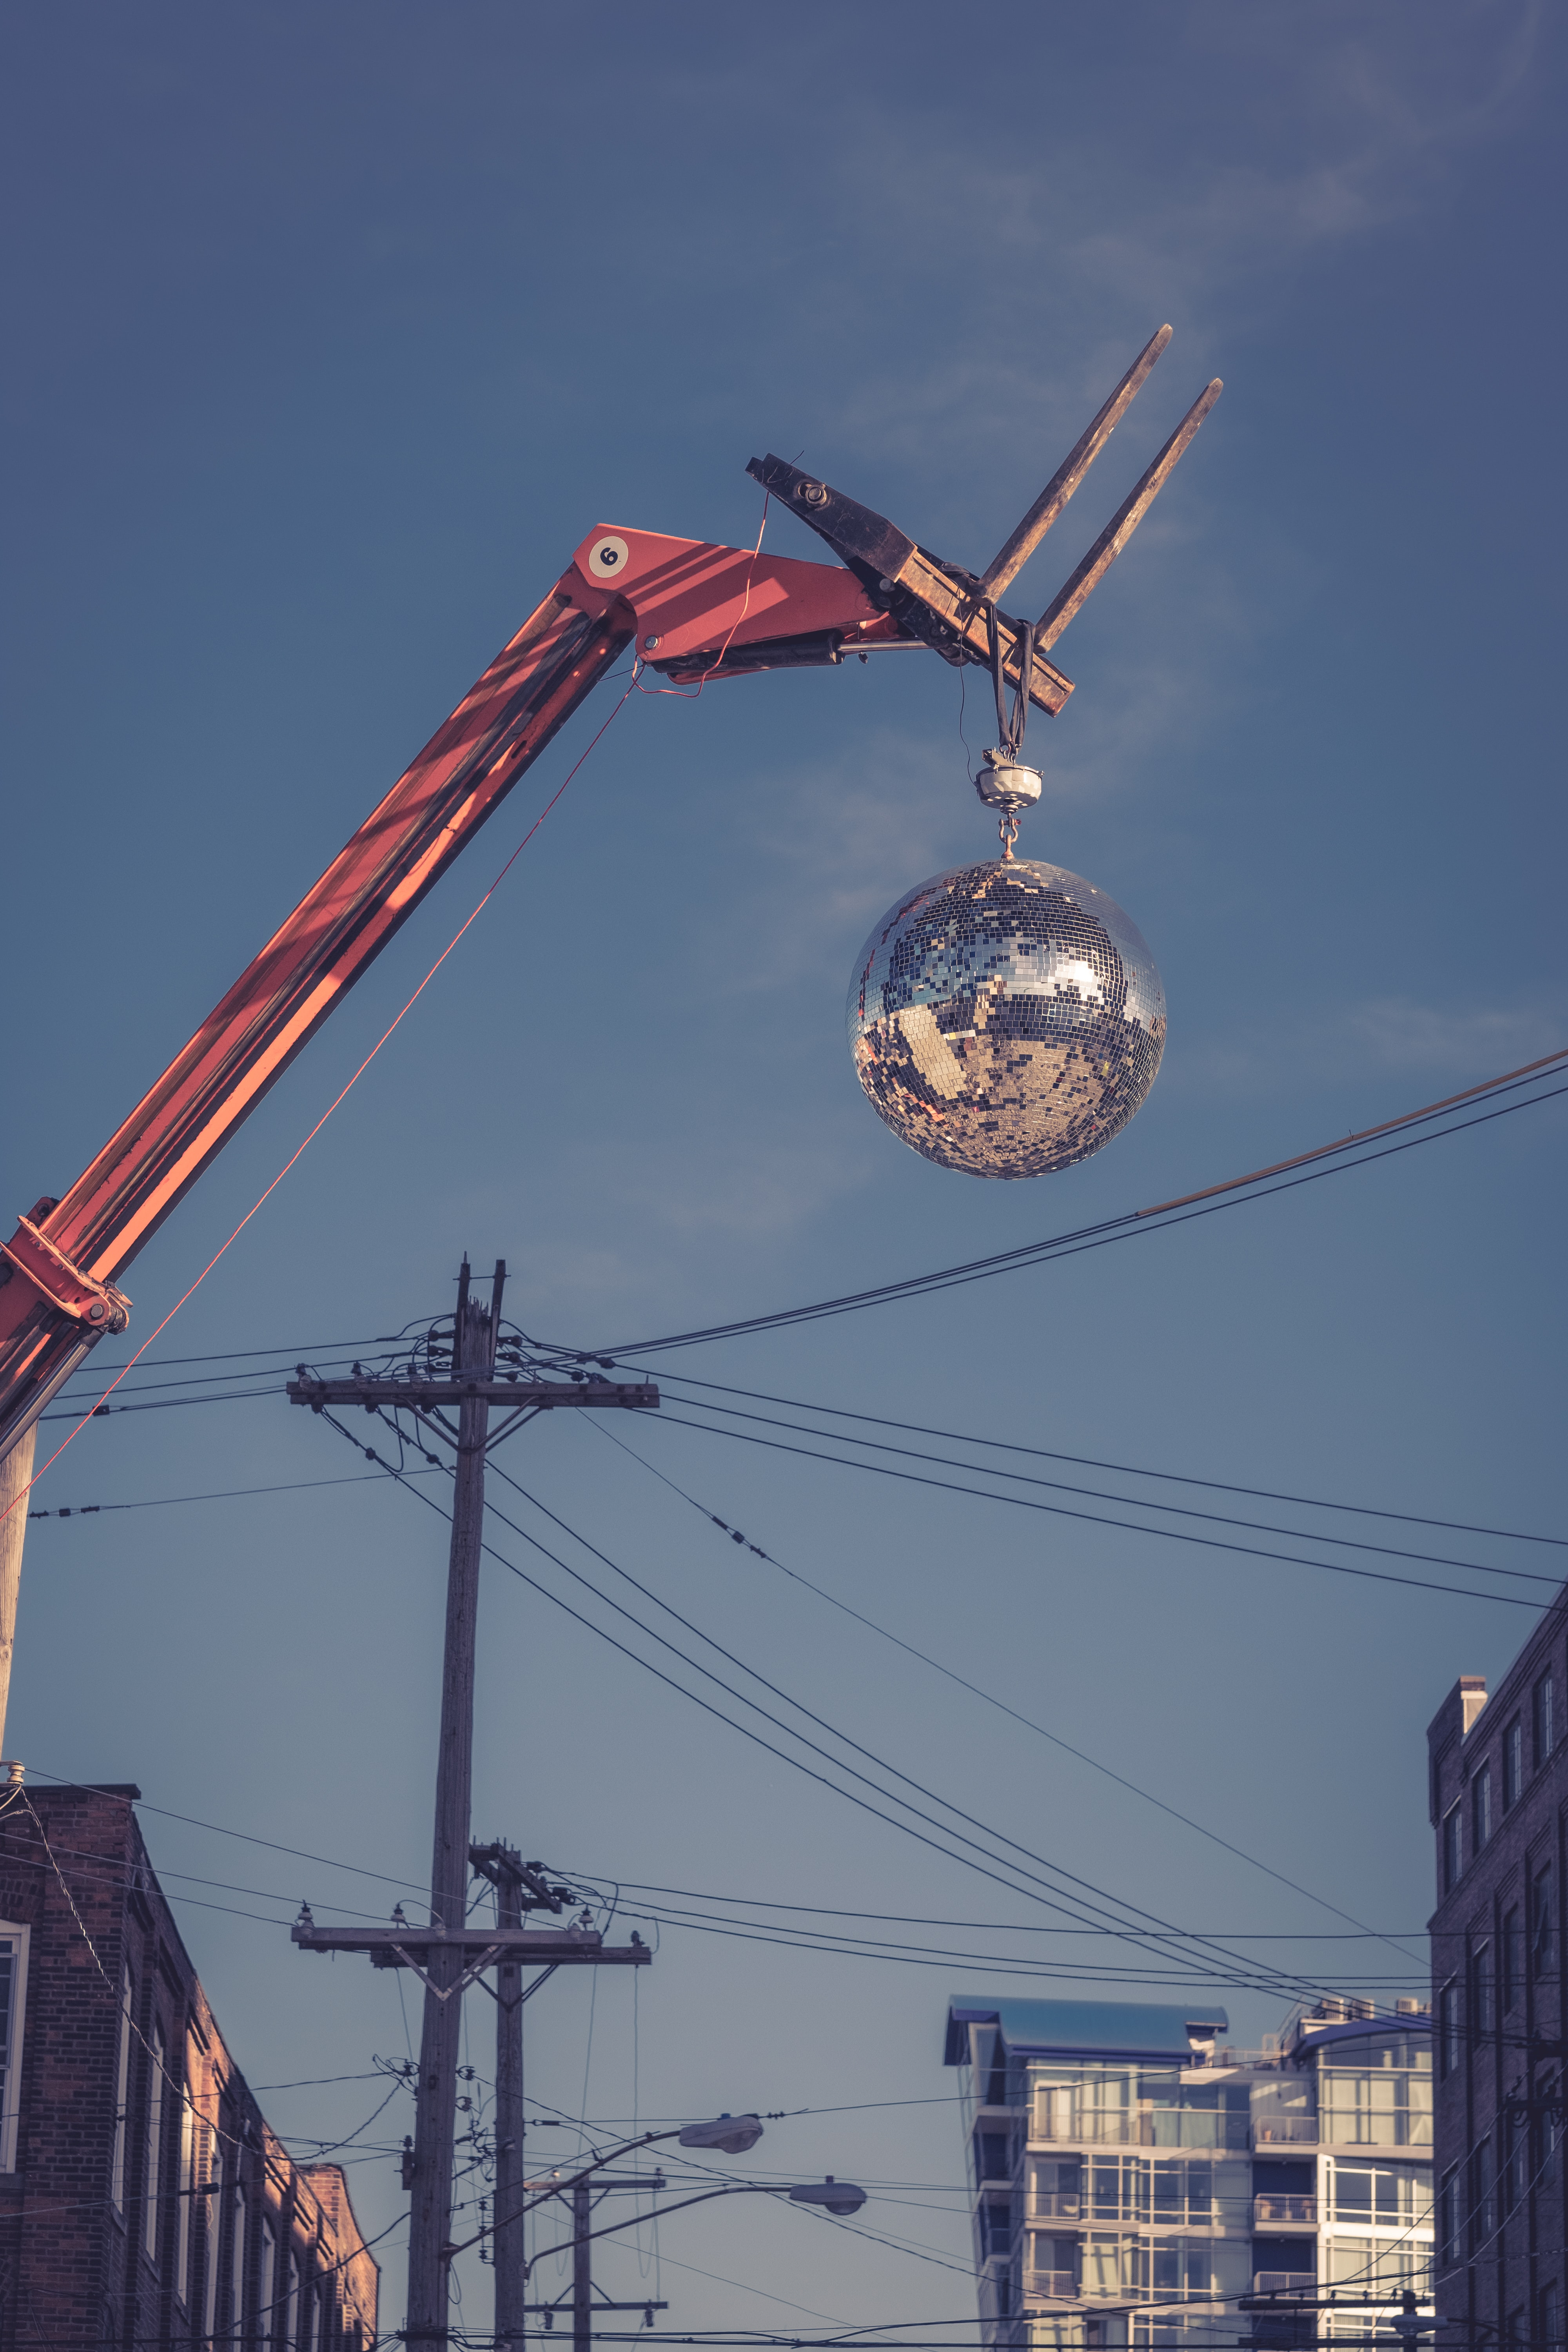 worm's-eye view photography of red and silver wrecking ball near electric post under clear blue sky